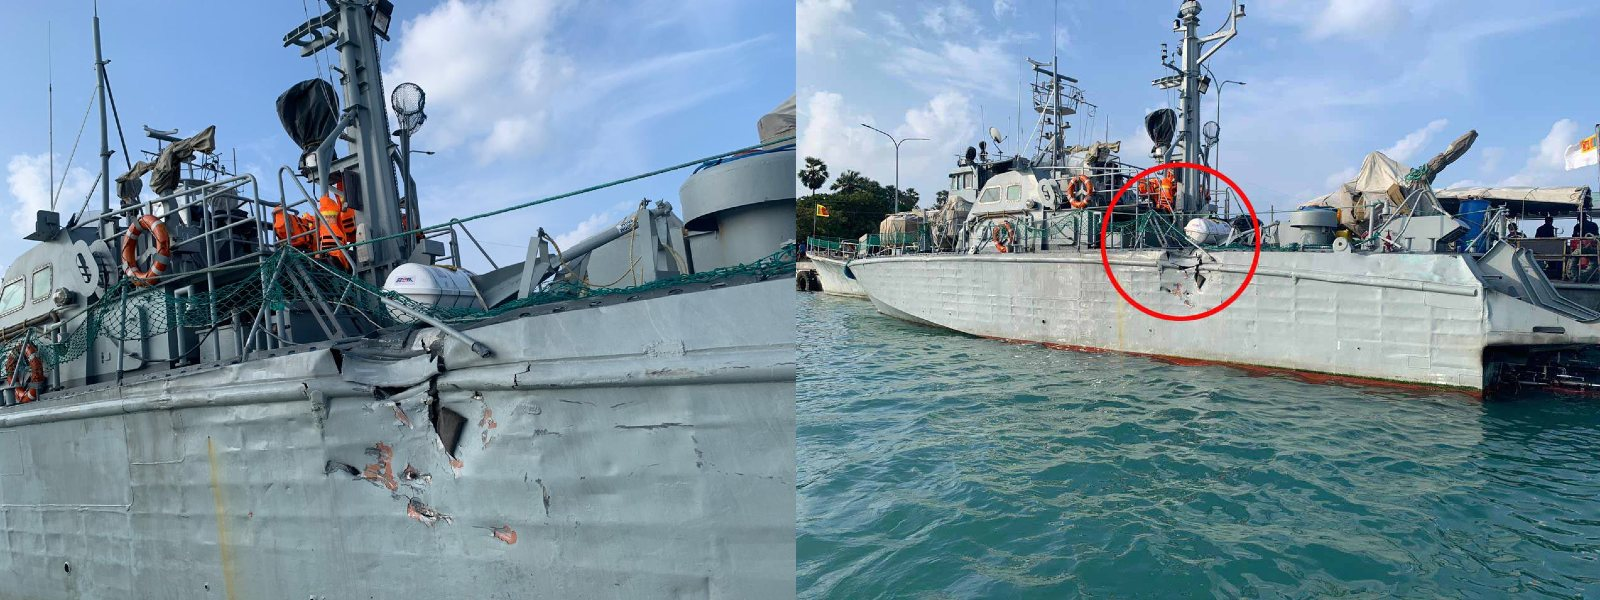 NAVY SEARCHING FOR SUNKEN INDIAN BOAT & CREW